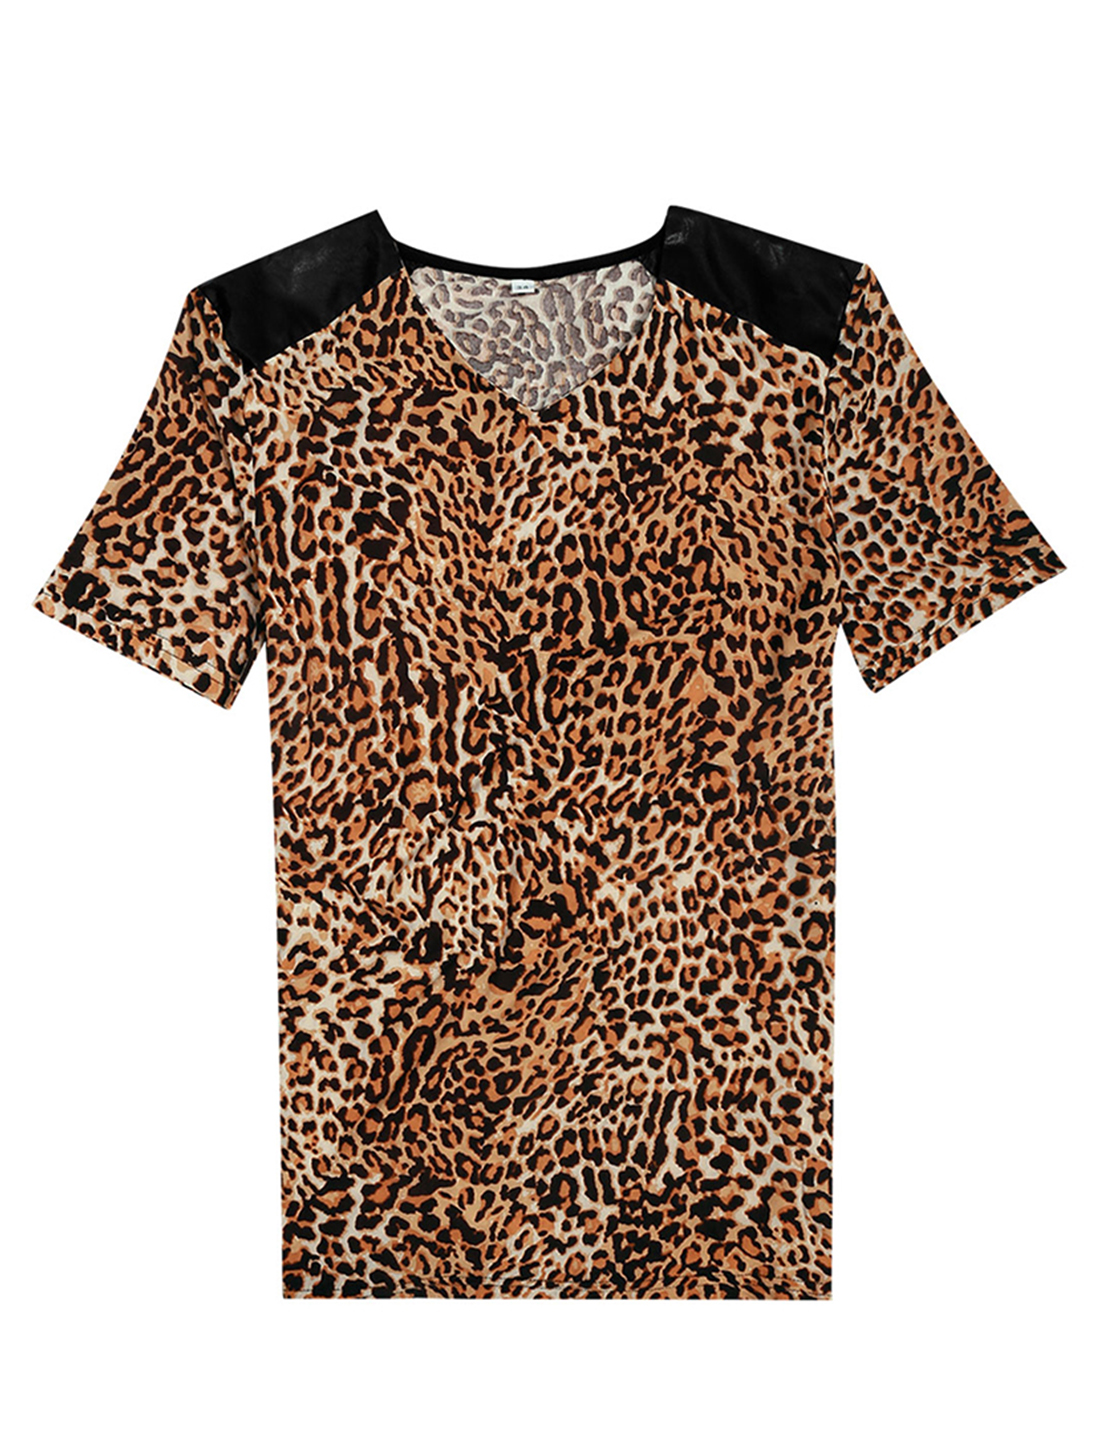 Men Brown Coffee V-neck Short Sleeve Leopard Summer Slim Top Shirt S